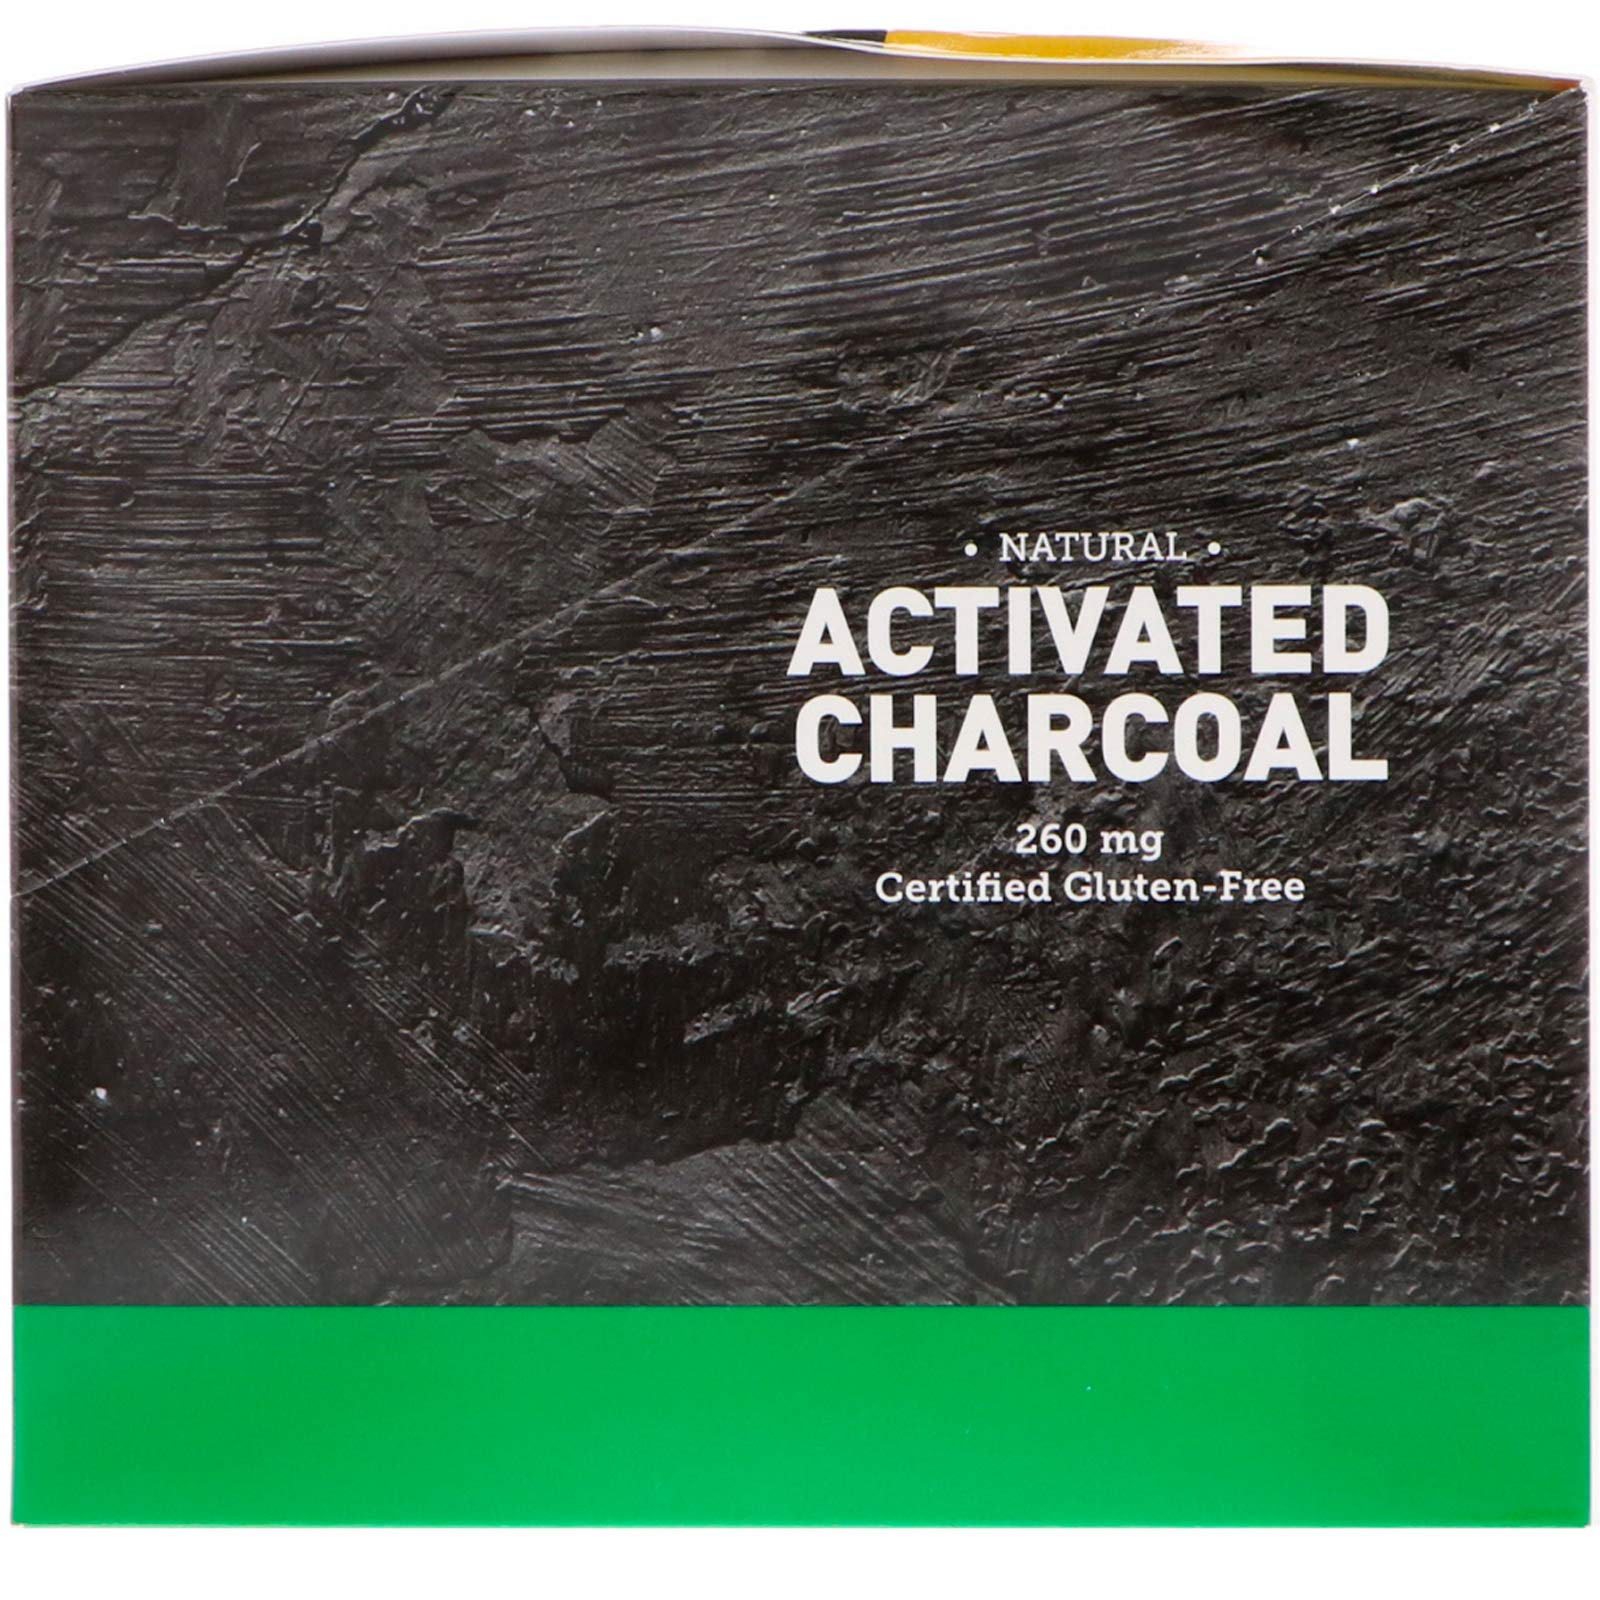 Country Life, Natural Activated Charcoal, 260 mg, 20 Packets, 2 Capsules Each